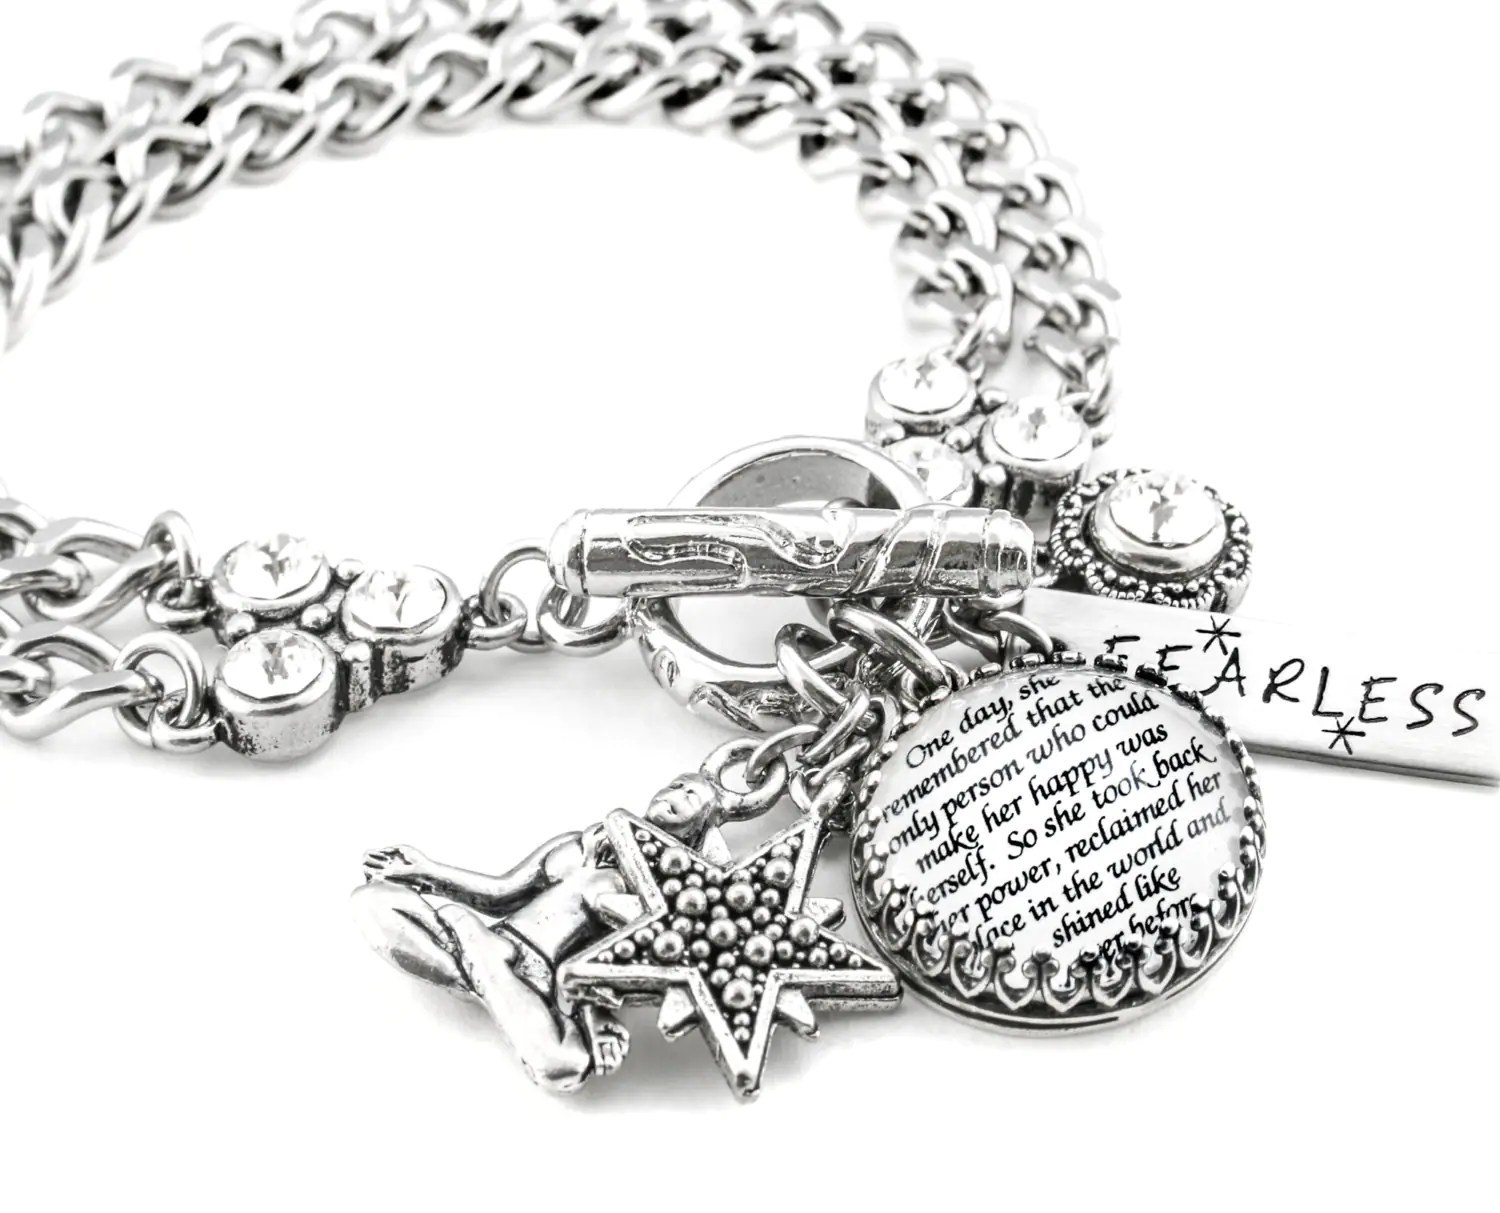 Silver Inspirational Jewelry Power Quote By Blackberrydesigns